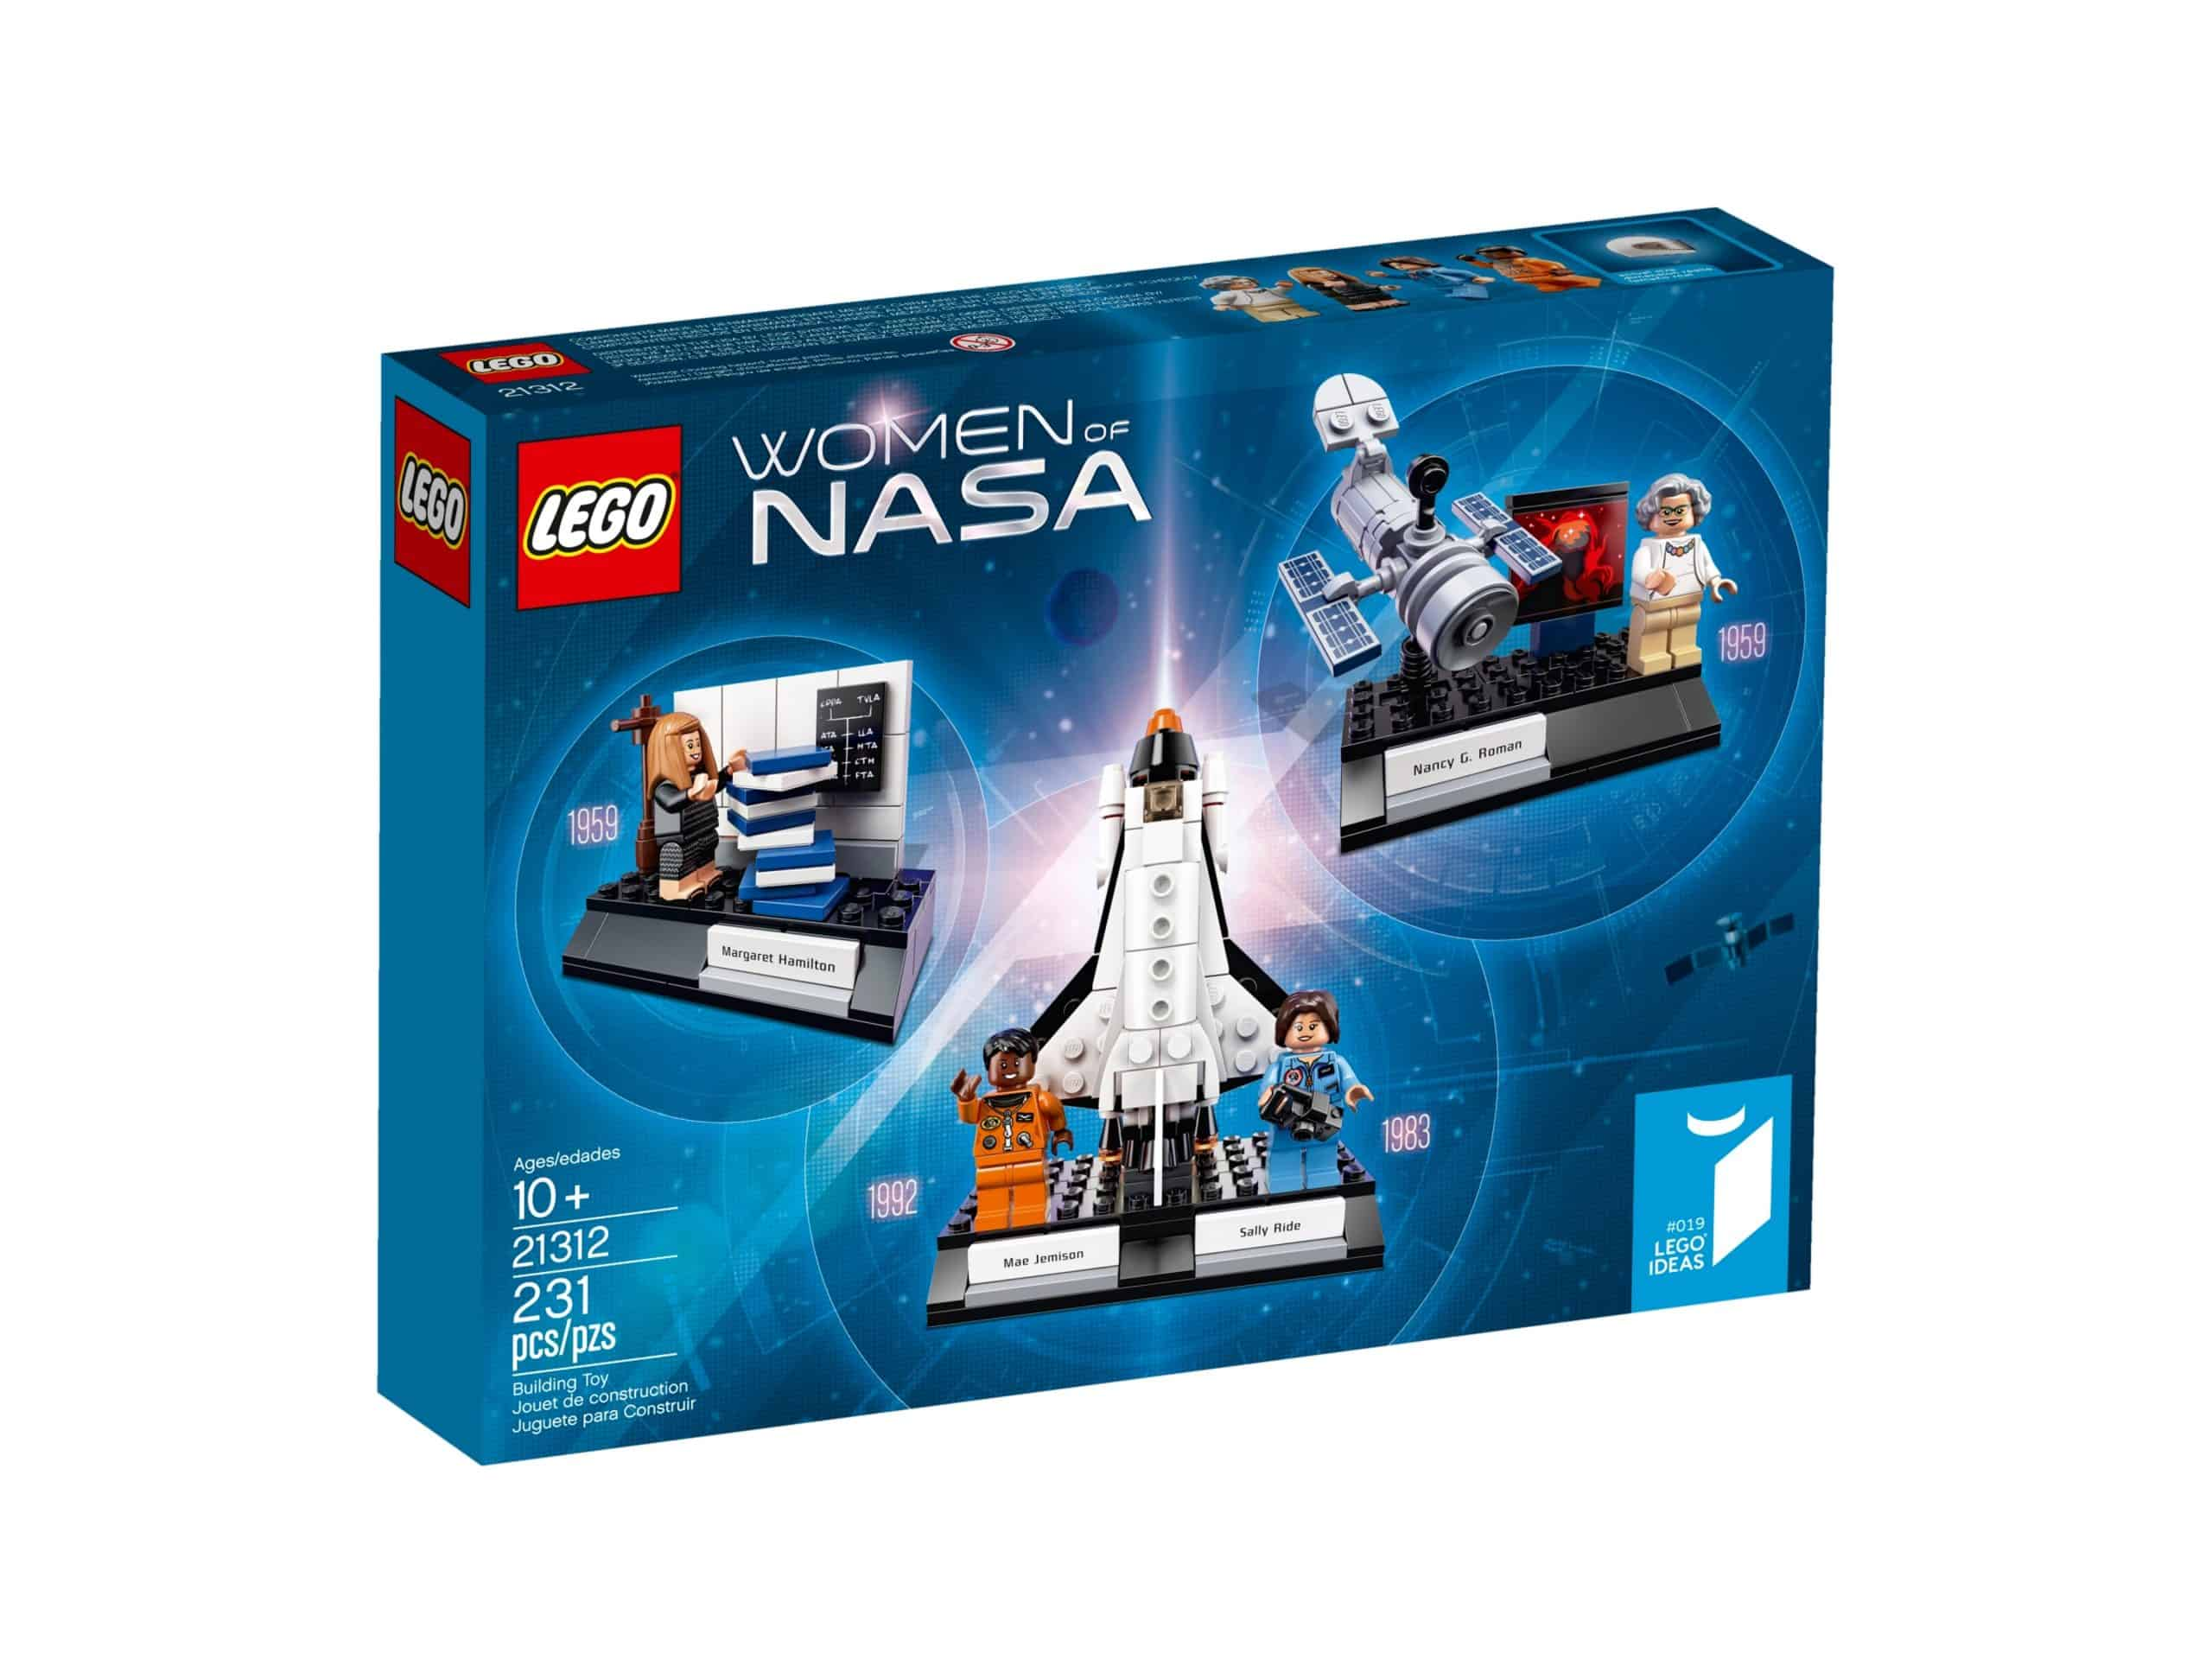 lego 21312 die nasa frauen scaled